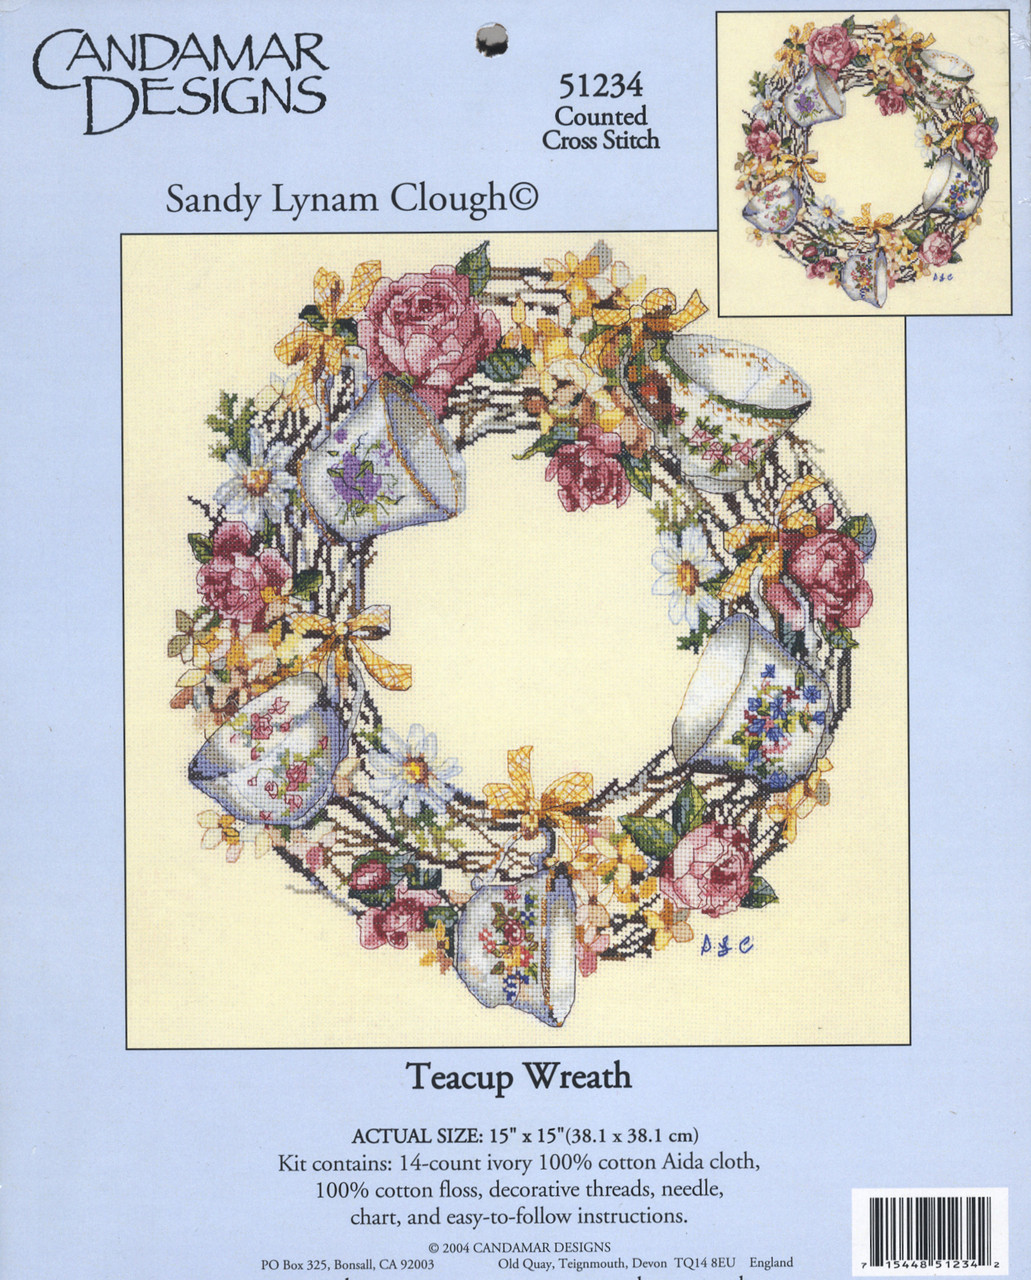 Candamar - Teacup Wreath